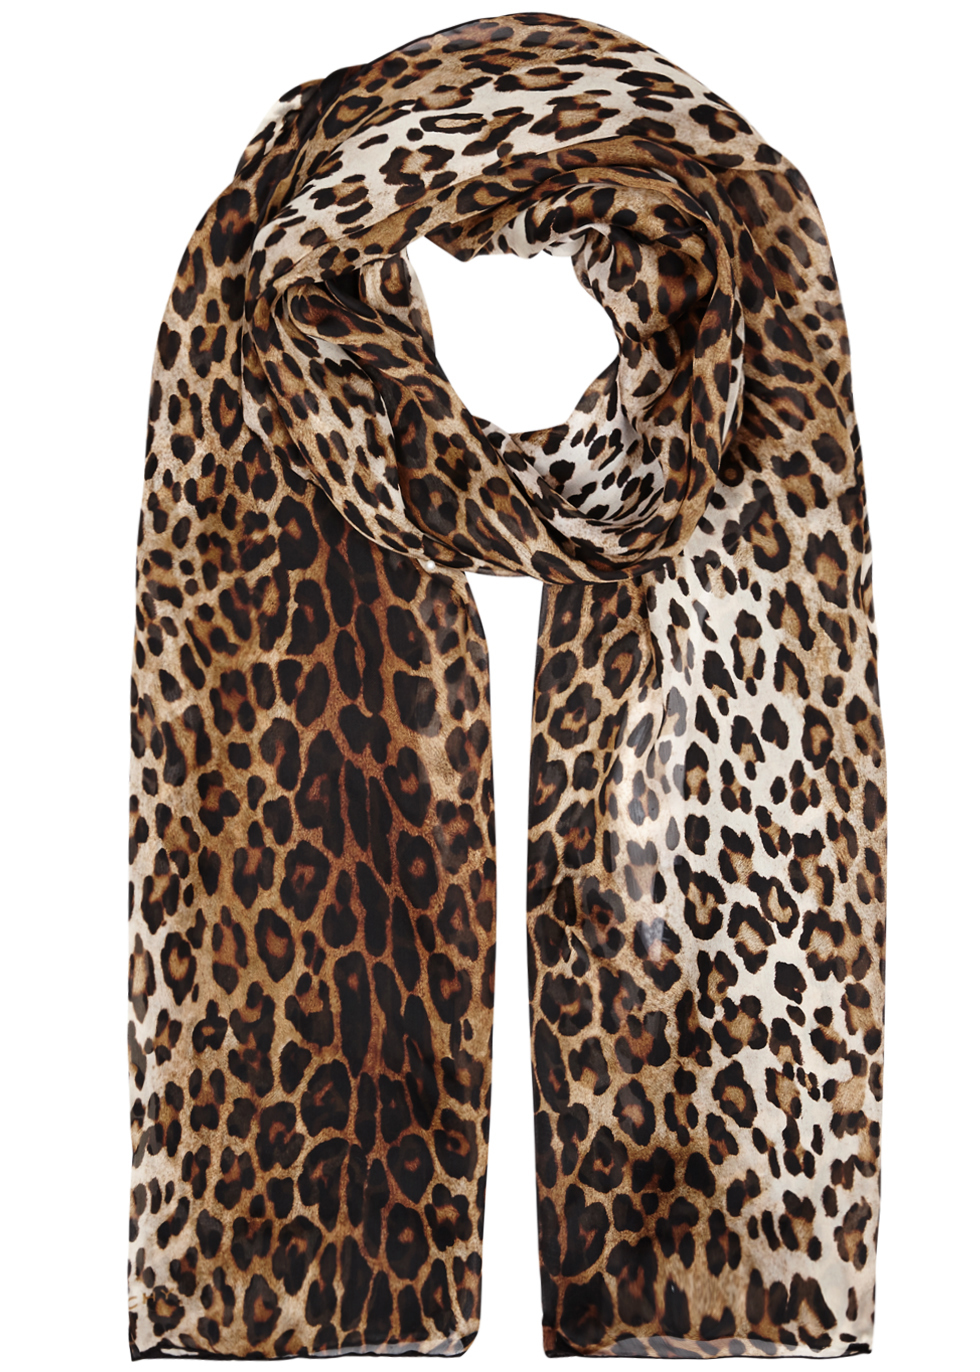 Leopard Print Silk Chiffon Scarf - predominant colour: camel; secondary colour: black; occasions: evening, work; type of pattern: standard; style: regular; size: standard; material: silk; pattern: animal print; season: a/w 2016; wardrobe: highlight